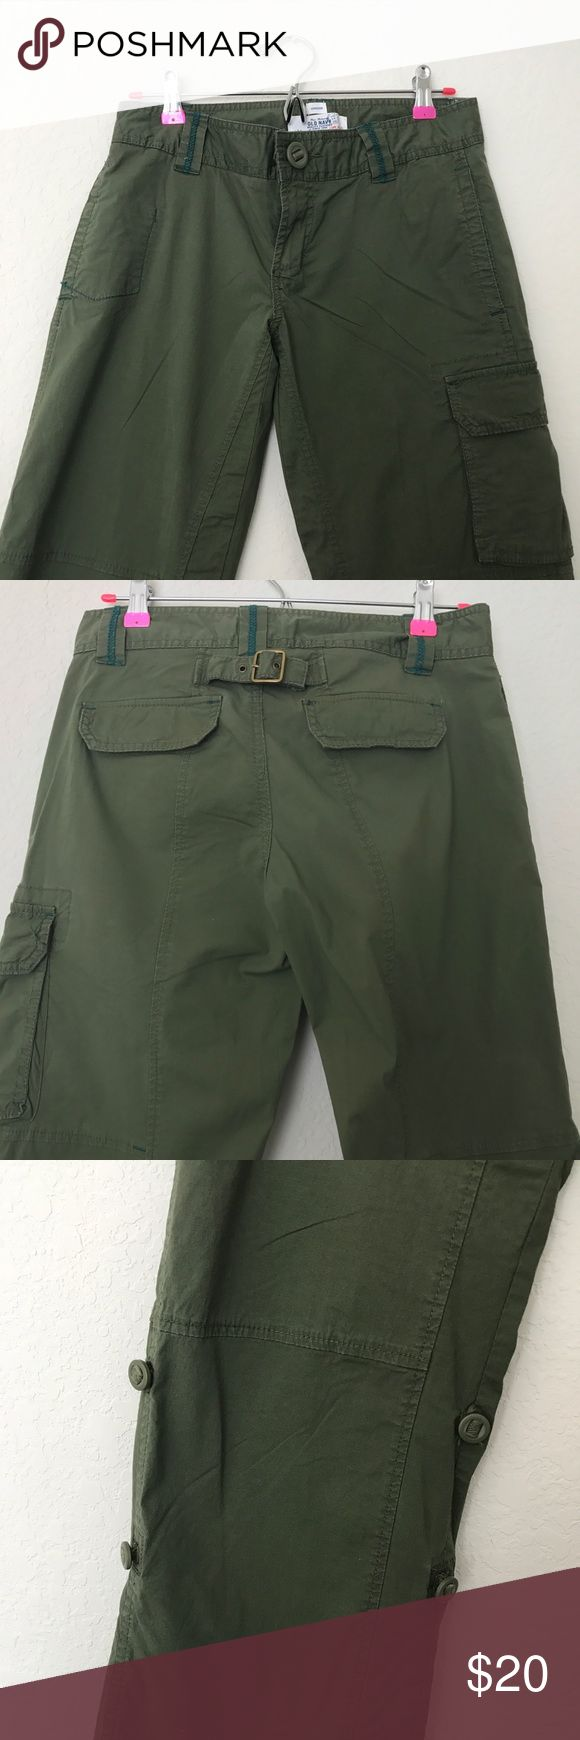 Old Navy Cargo Pants Old Navy ladies cargo pants, color olive, size 4. These pants can be folded up and buttons into Capri pants, at two different lengths. Old Navy Pants